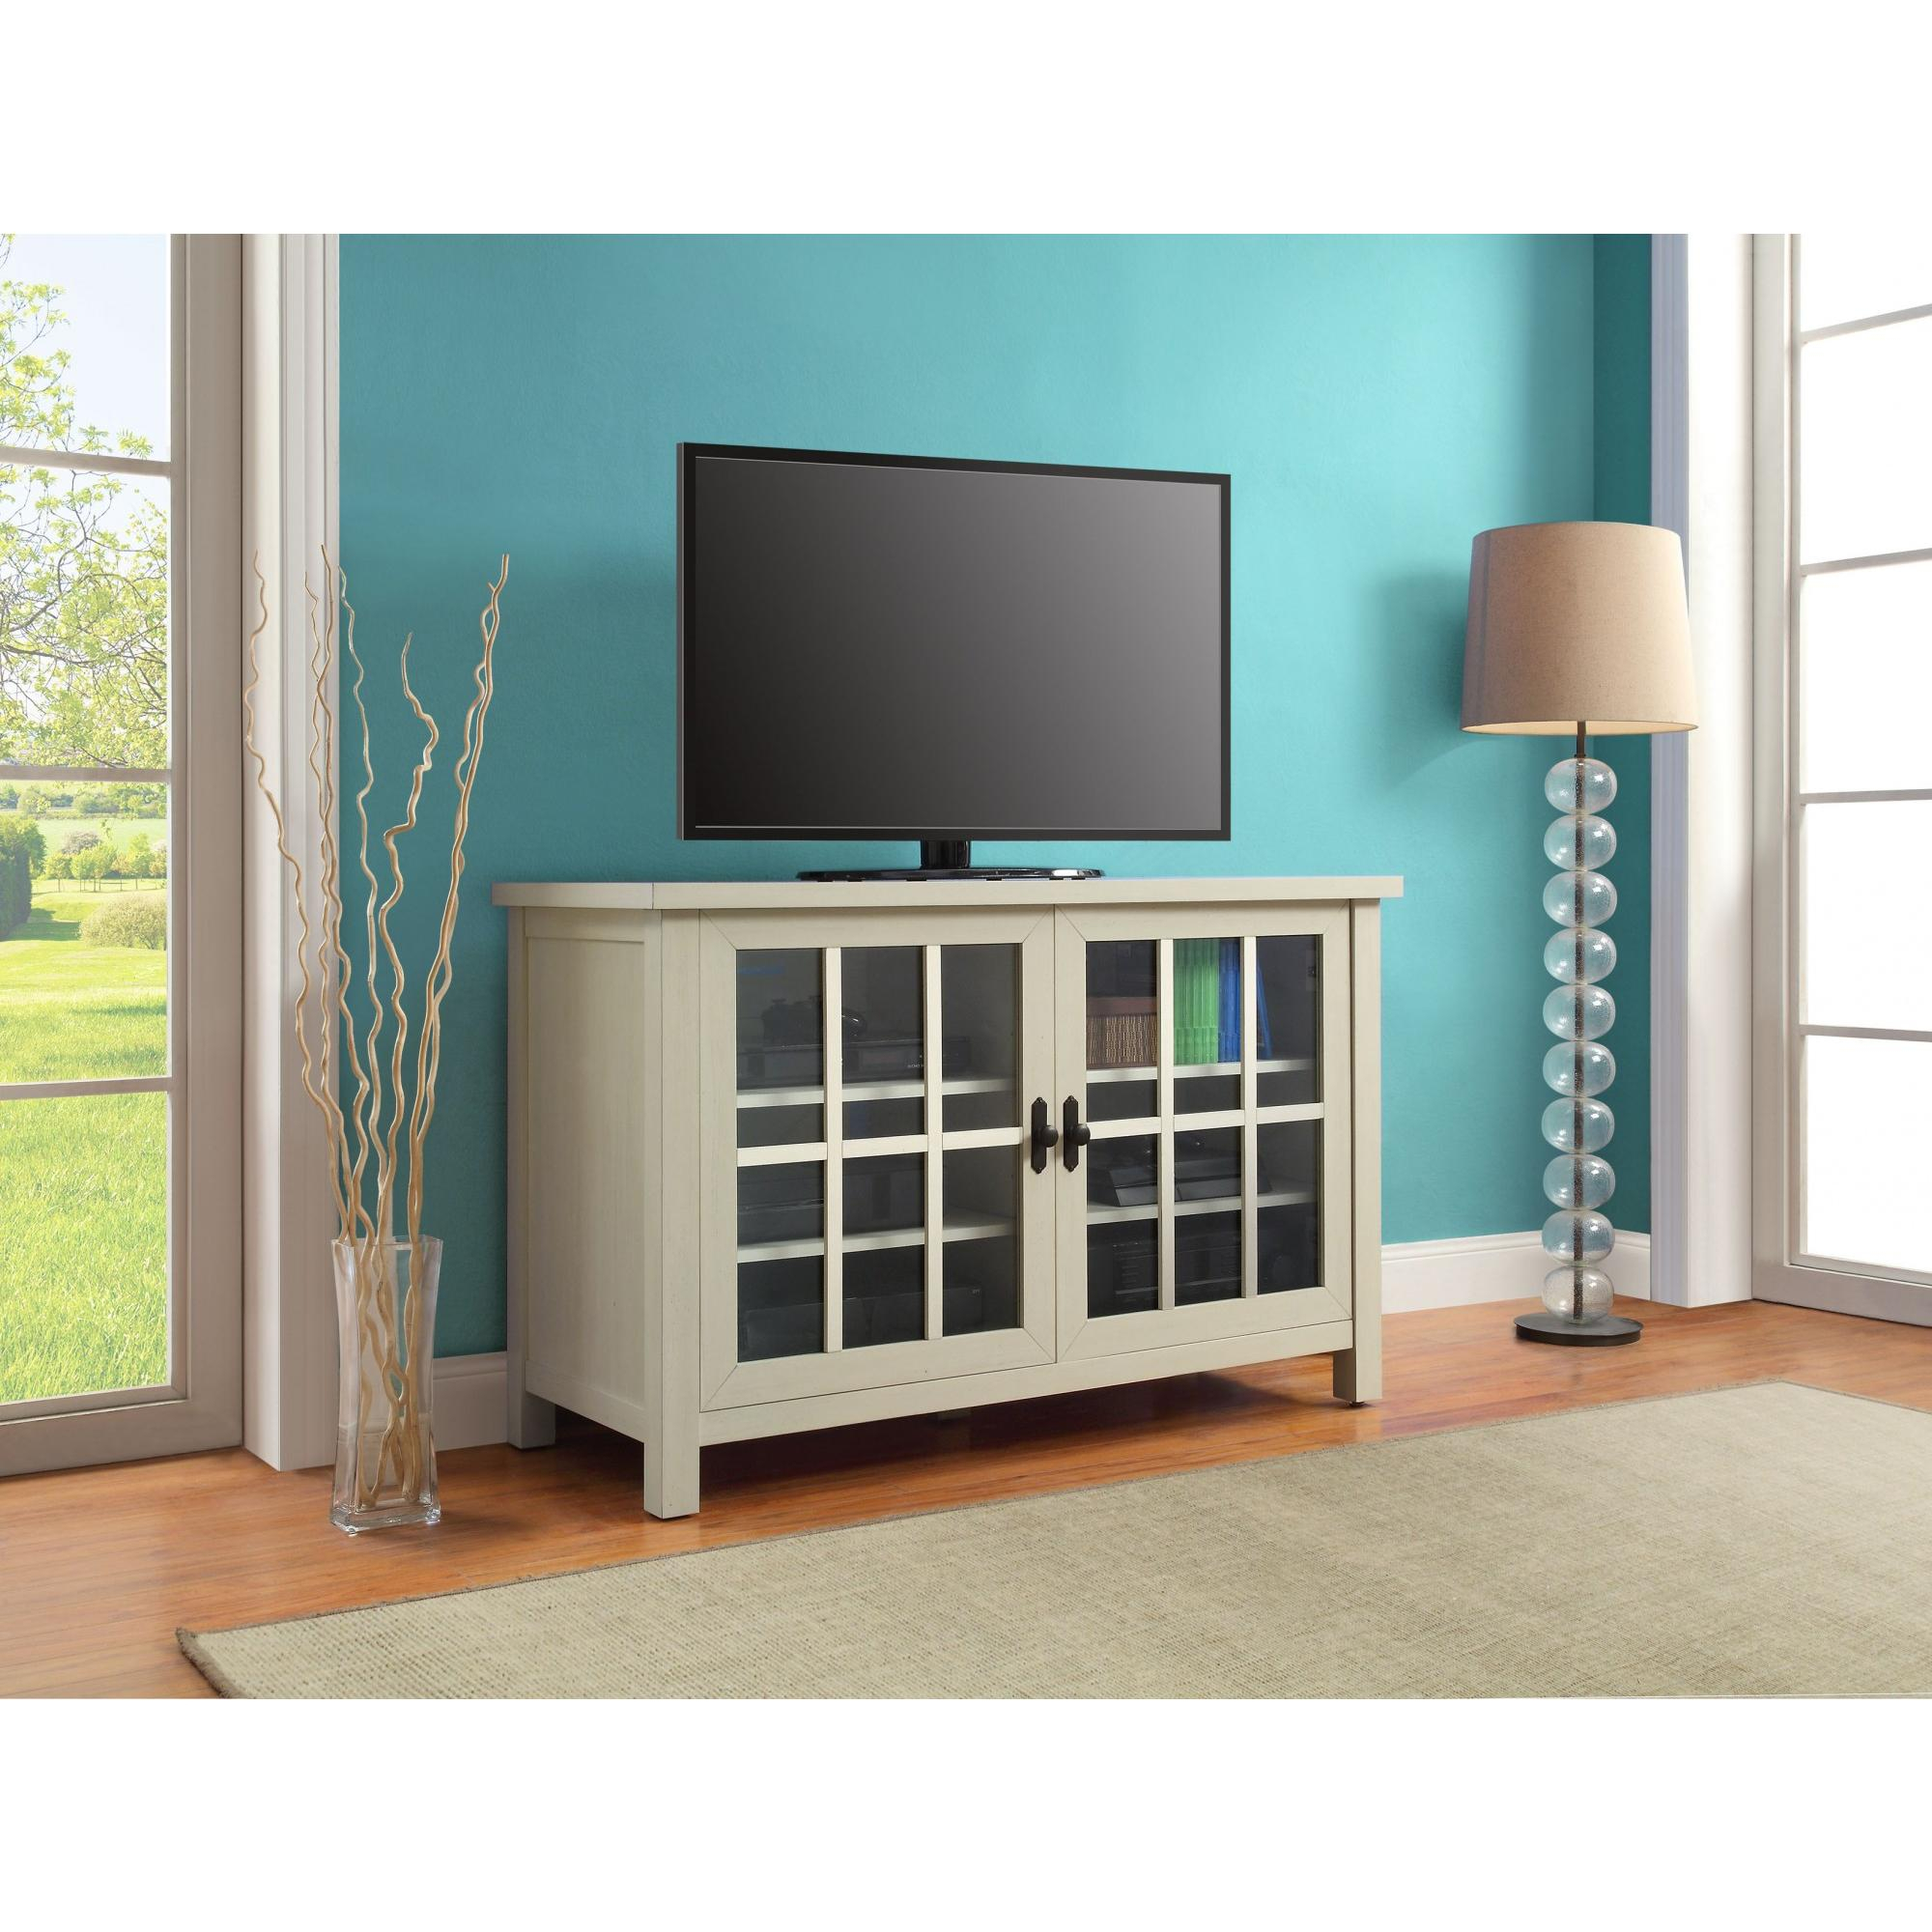 Better Homes And Gardens Oxford Square Tv Console For Tvs Up To 55 with Oxford 84 Inch Tv Stands (Image 12 of 30)